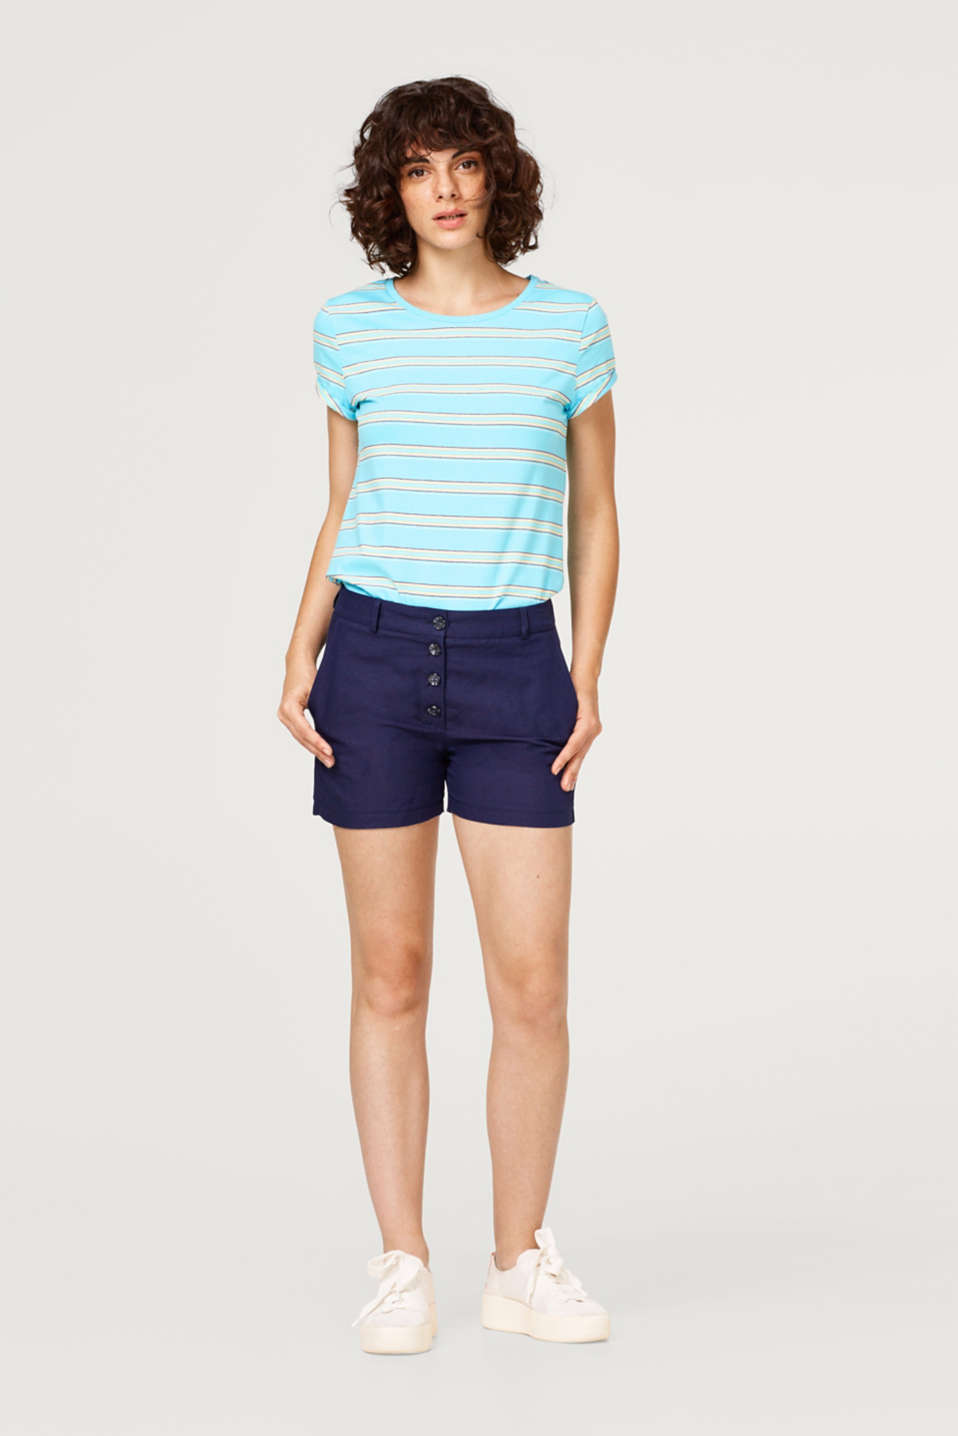 Top with stripes made of stretch cotton